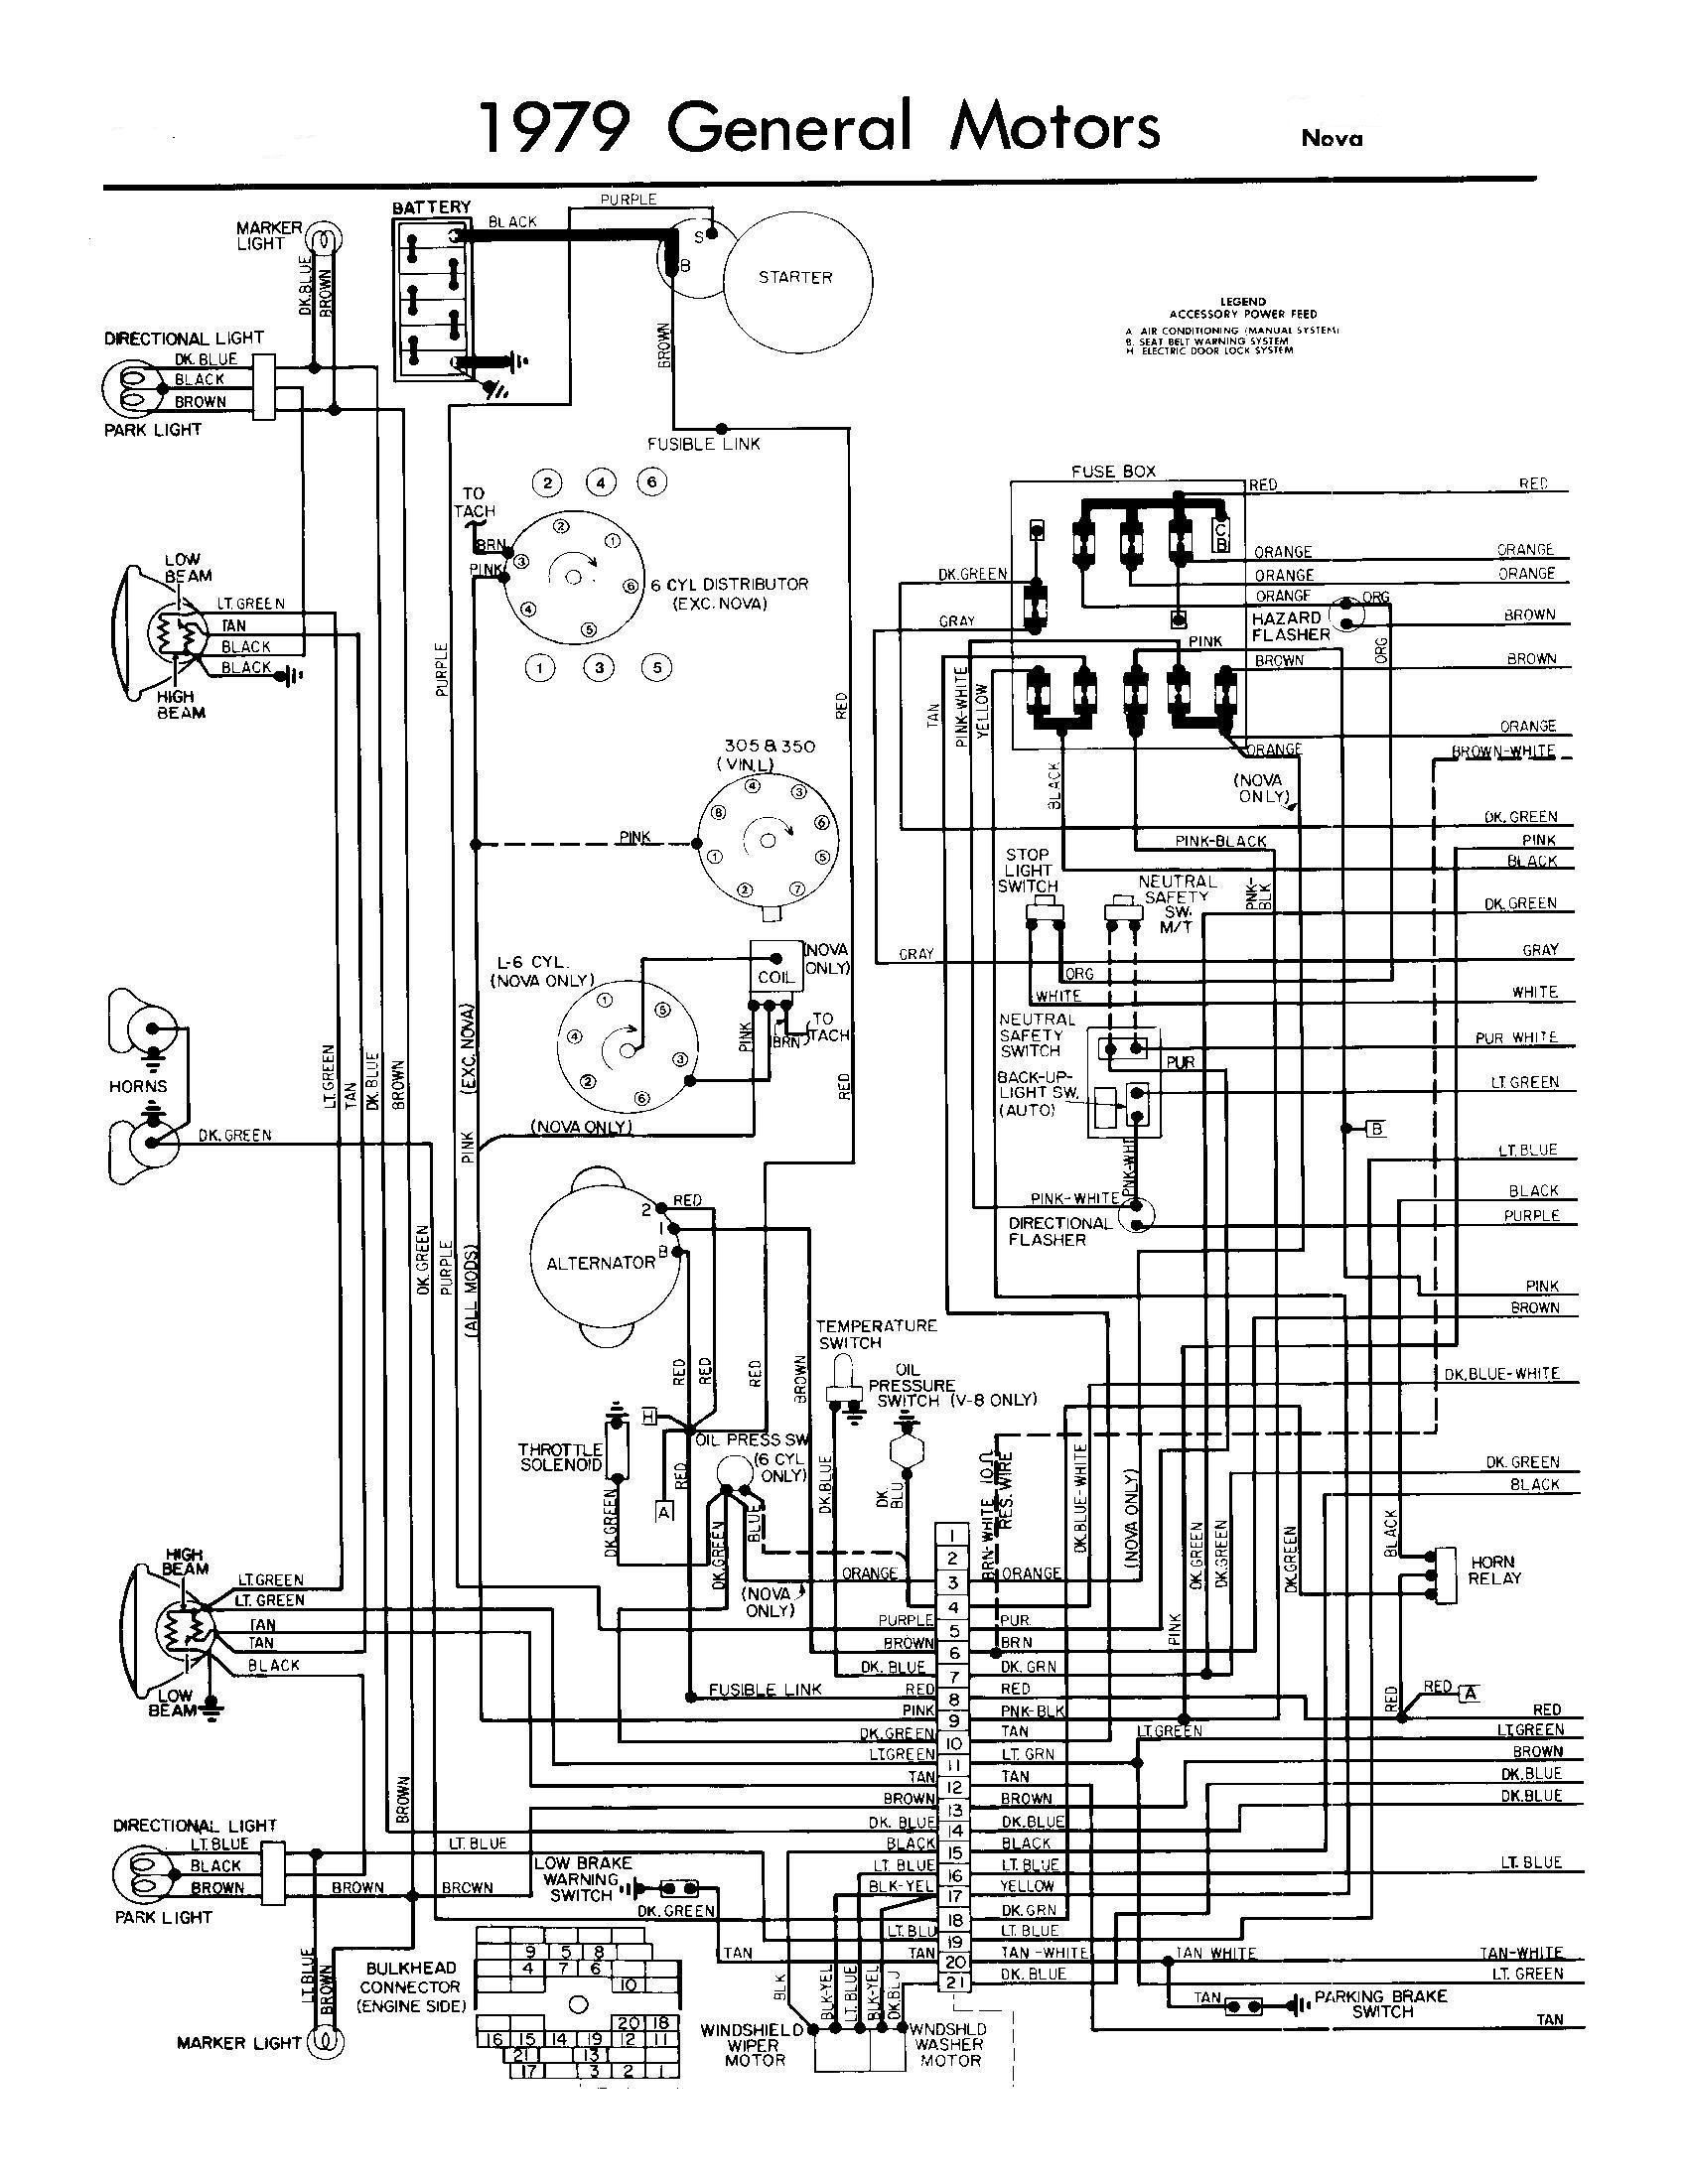 all generation wiring schematics chevy nova forum custom 79 gmc rh pinterest com 93 Chevy Truck Wiring Diagram 1987 Chevy Truck Fuel Schematic